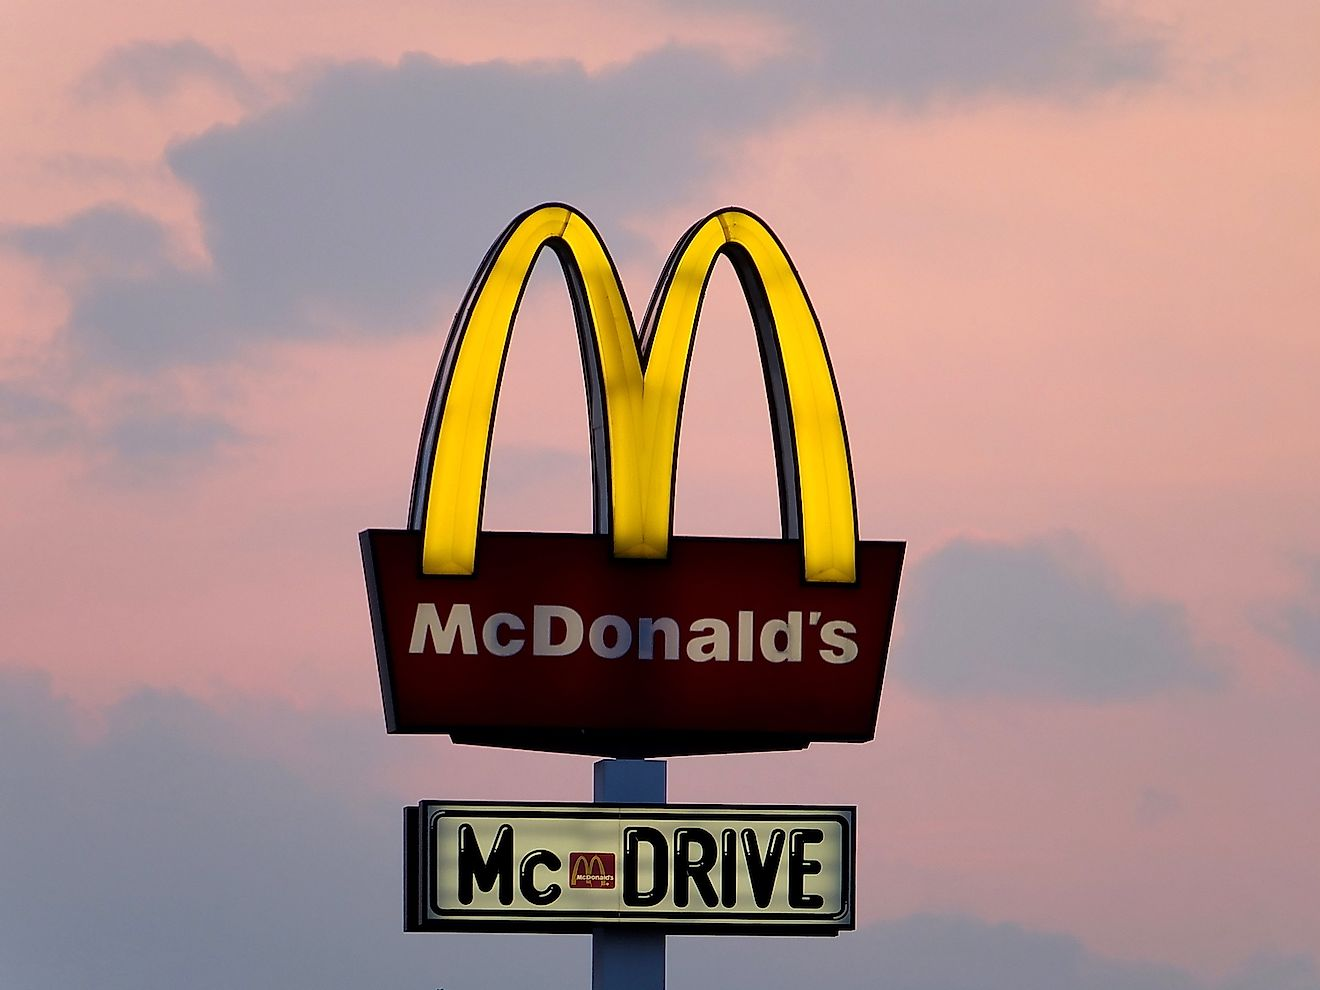 Neon of Mc Donald's in Szczecin, Poland. Mc Donald's is the largest and the most popular restaurant chain in Poland. Image credit:  siekierski.photo/Shutterstock.com